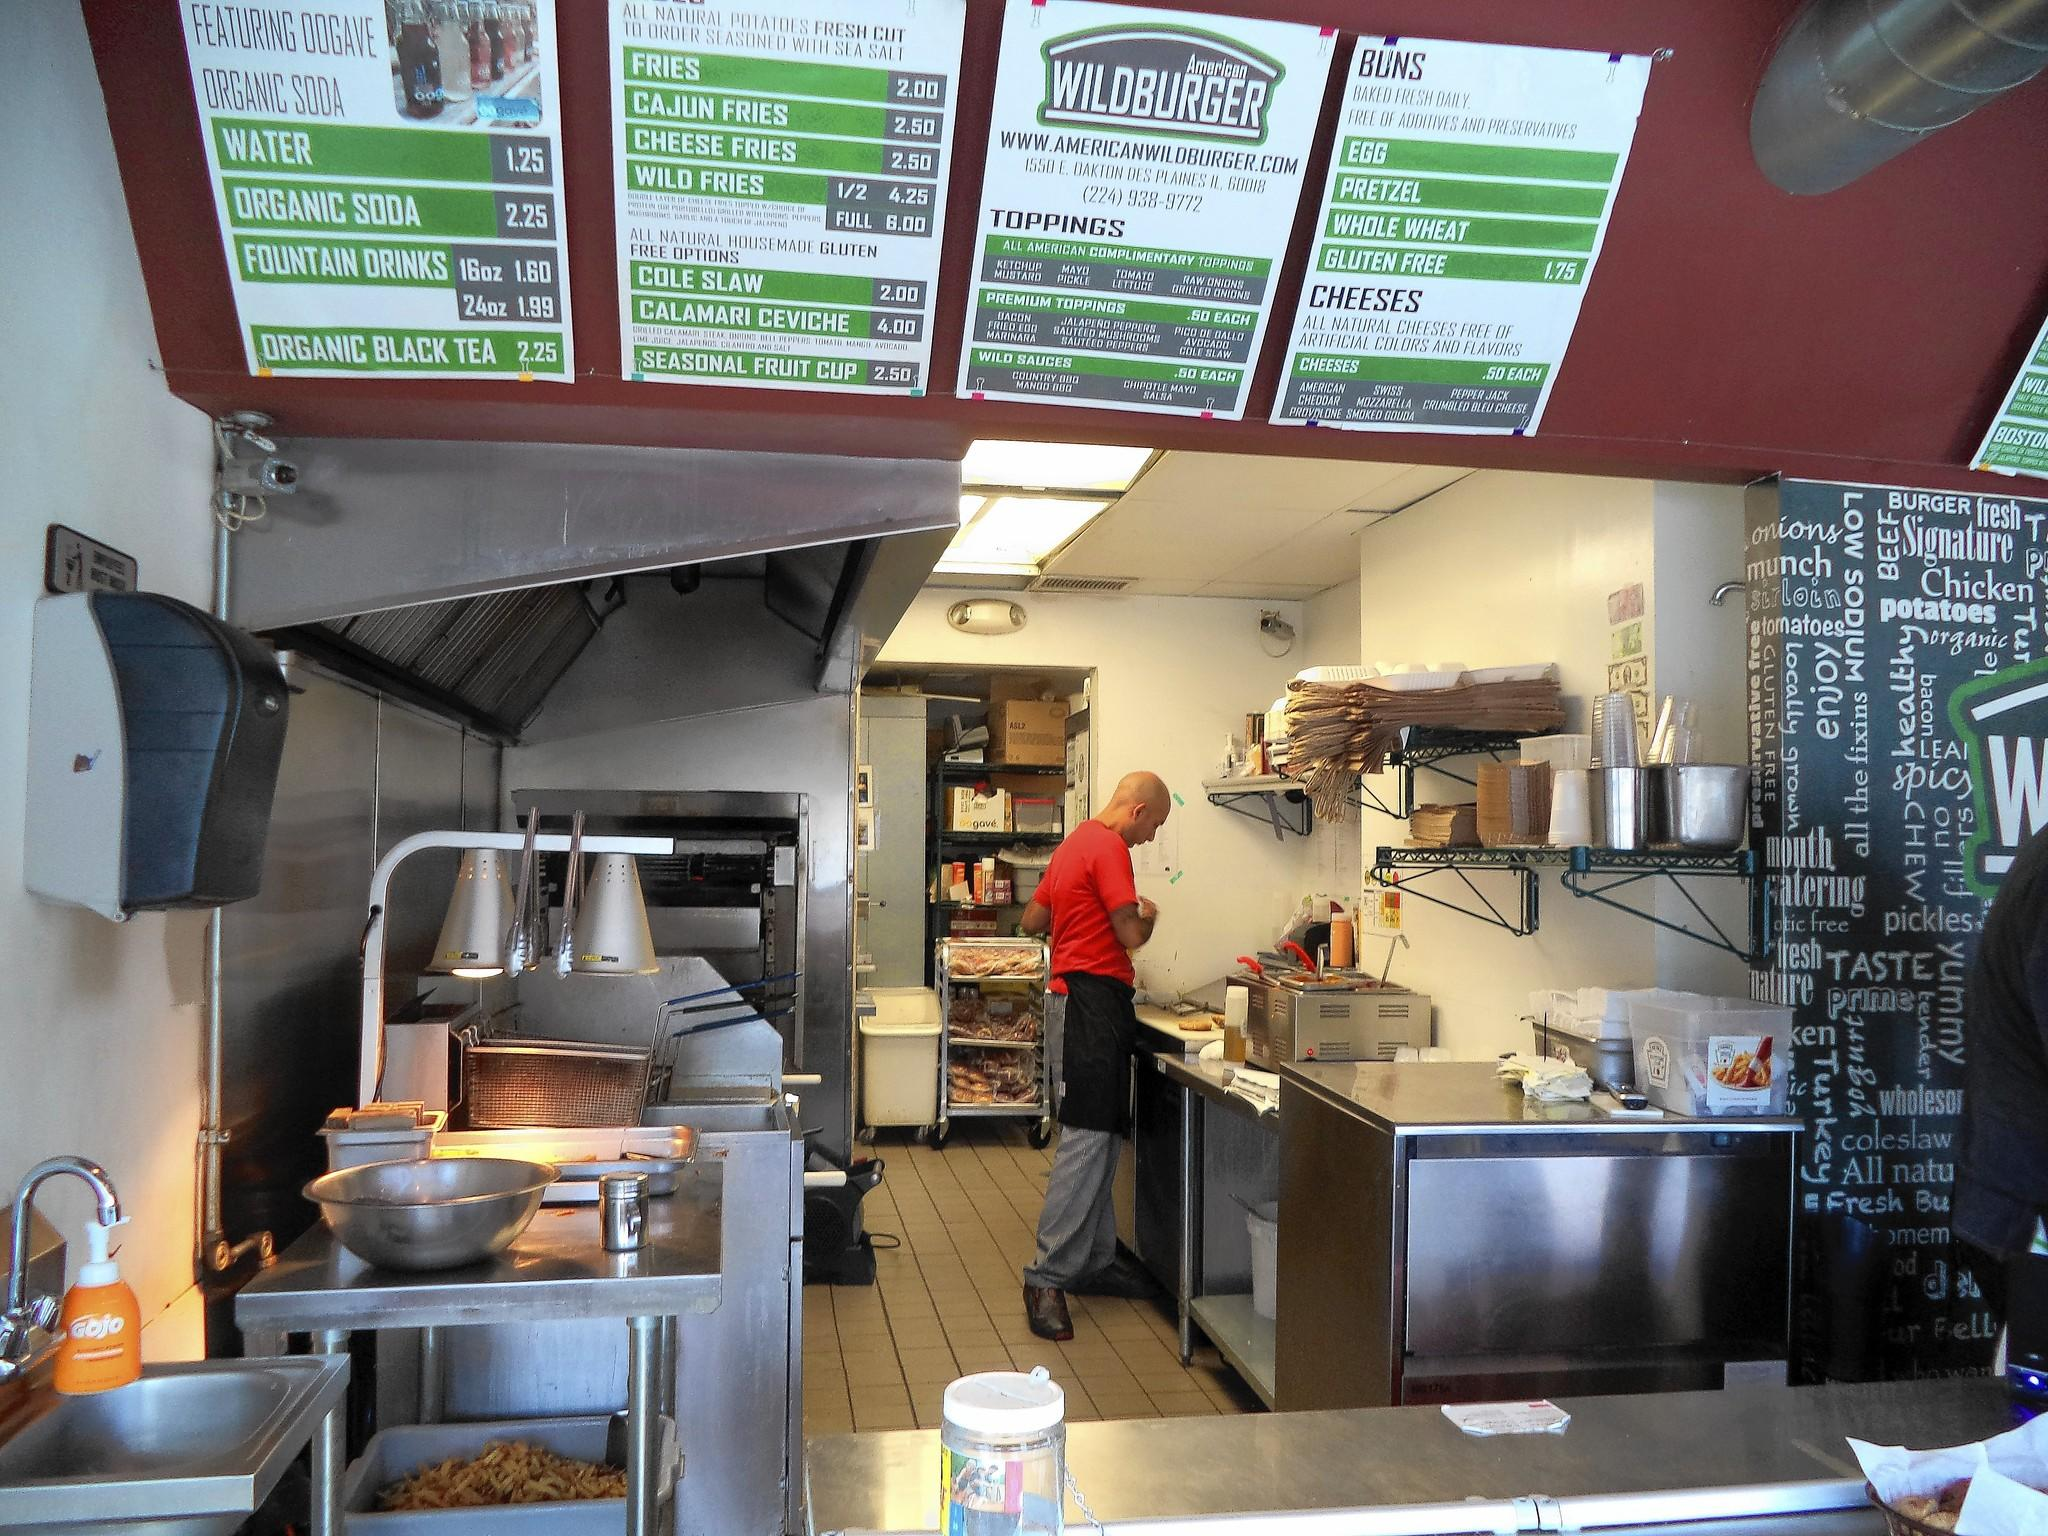 Alfredo Esparza, co-owner of American Wildburger, works in the restaurant's kitchen located at 1550 E. Oakton St. in Des Plaines.